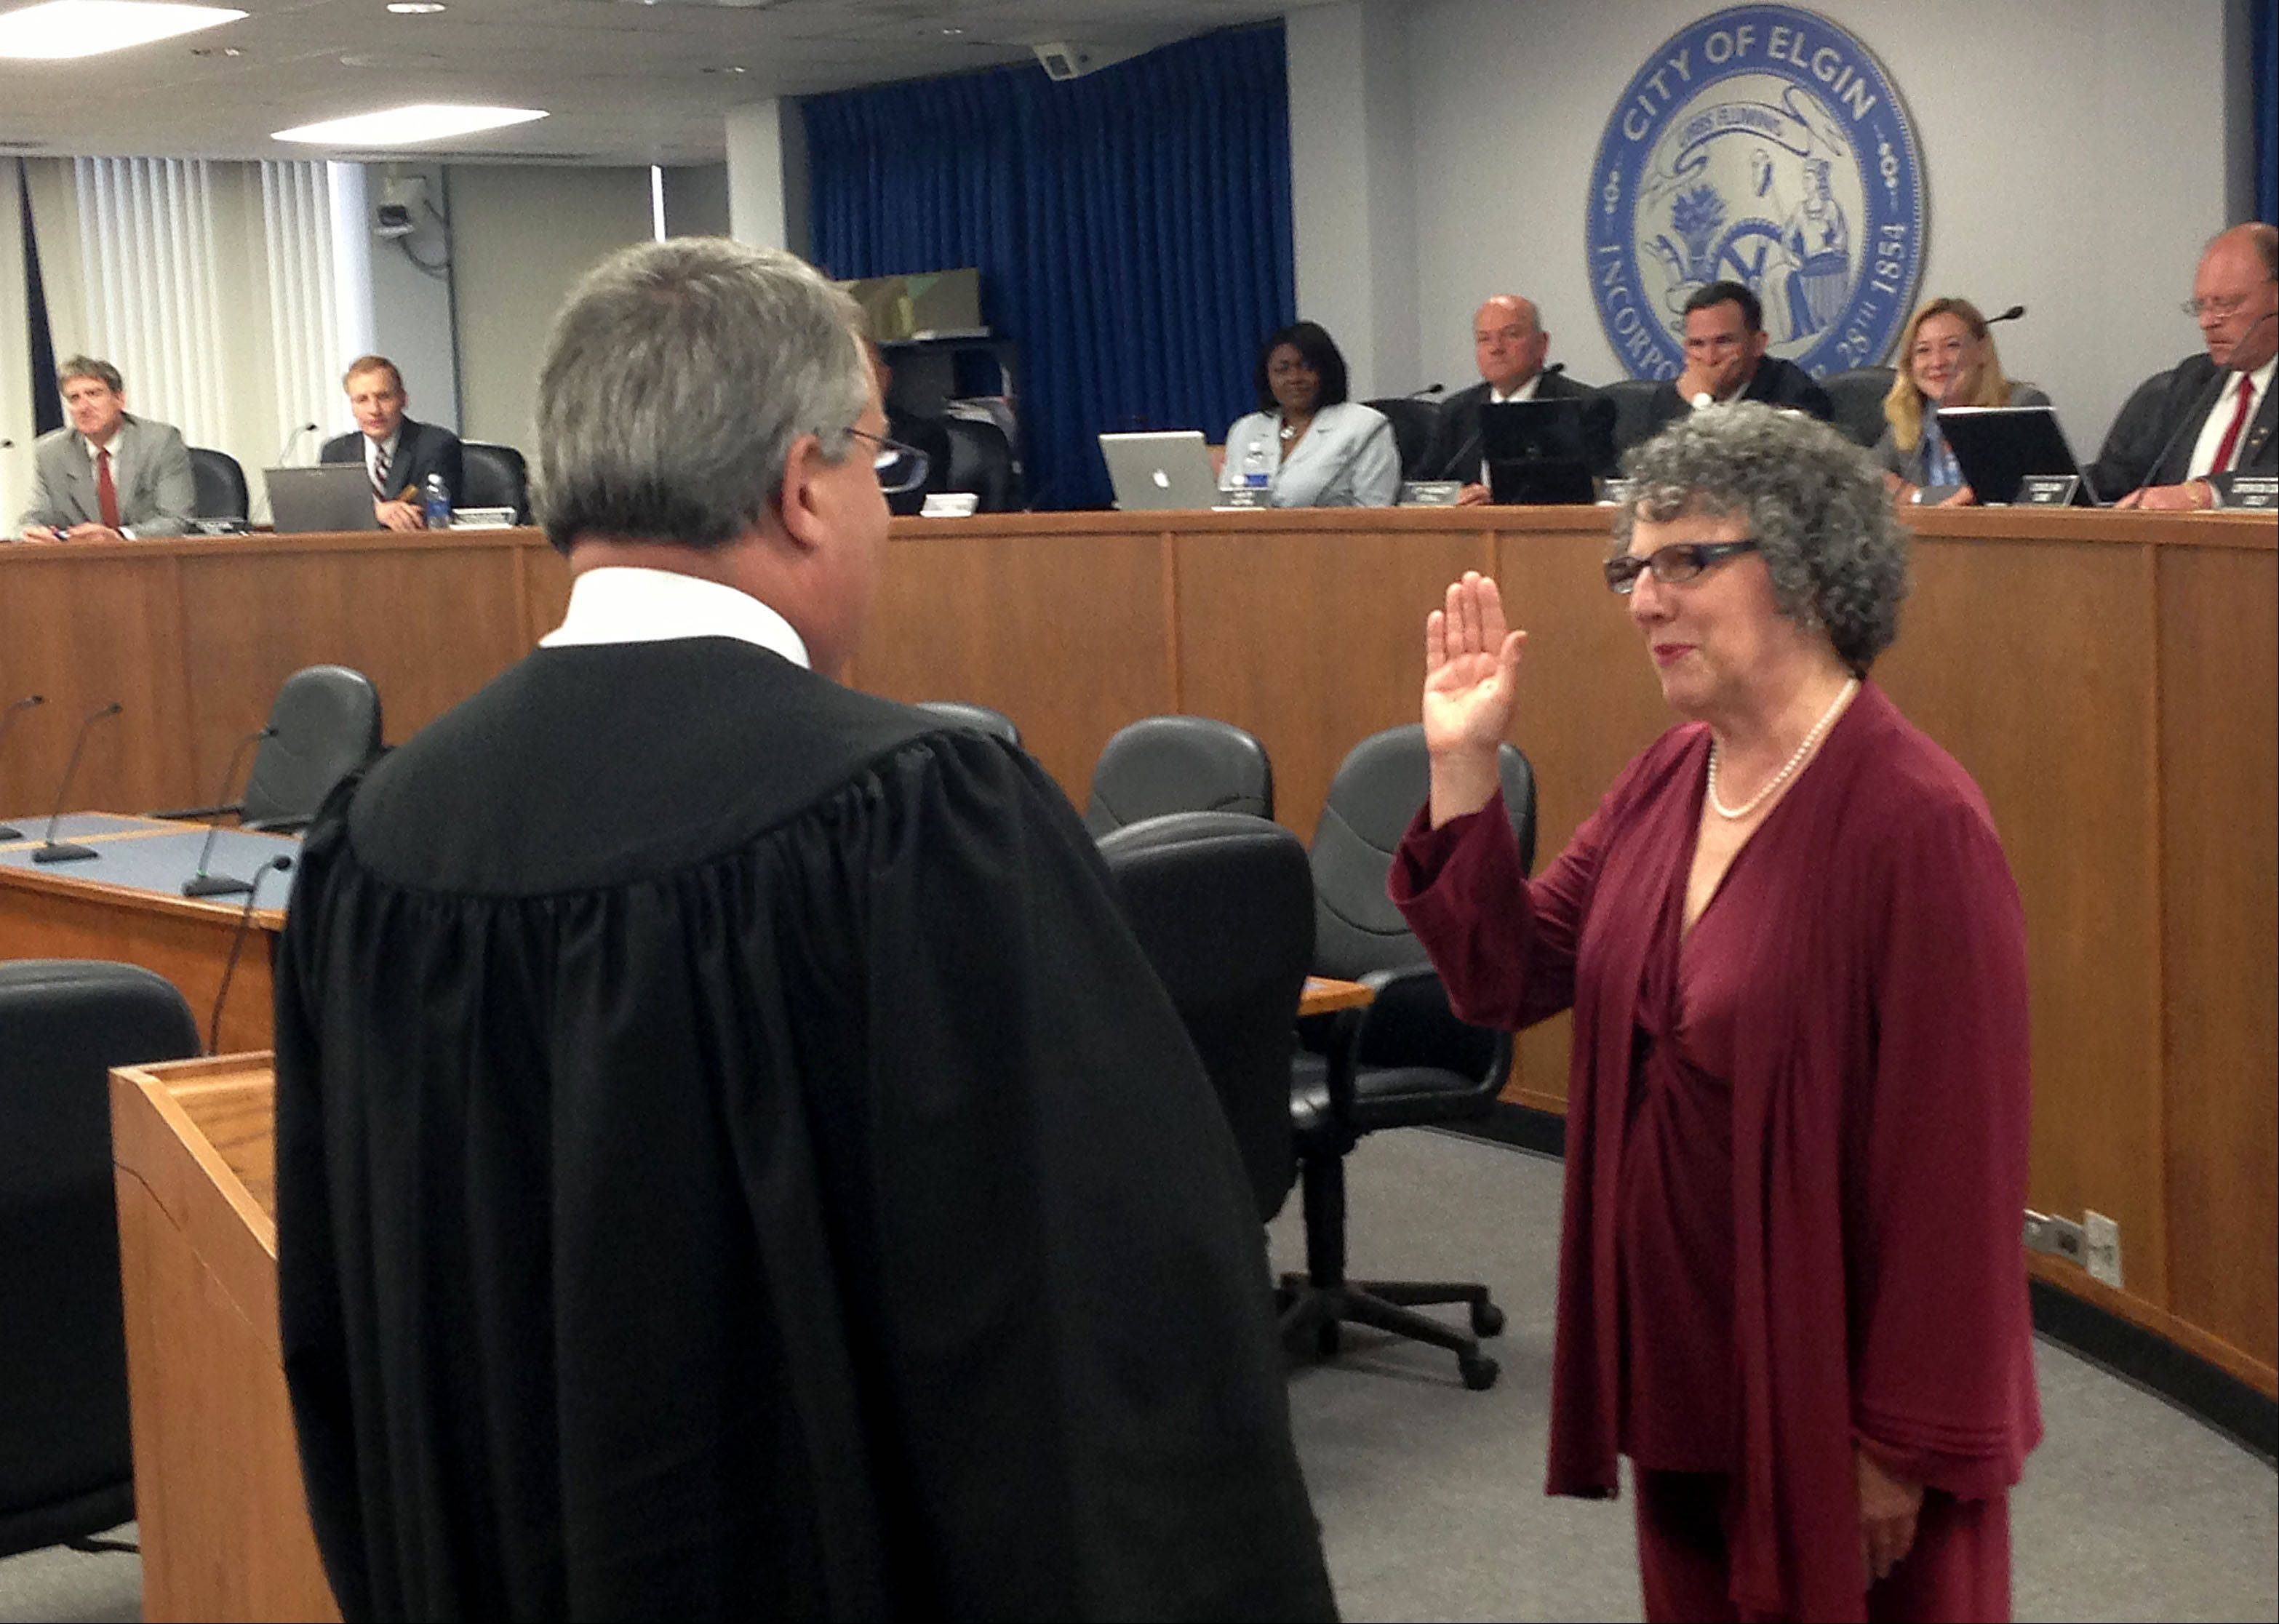 Newly elected Elgin councilwoman Carol Rauschenberger is sworn into office by Judge John G. Dalton, of the 16th Judicial Circuit in Kane County, on Wednesday night. There are now three women — out of nine members — on the Elgin City Council.